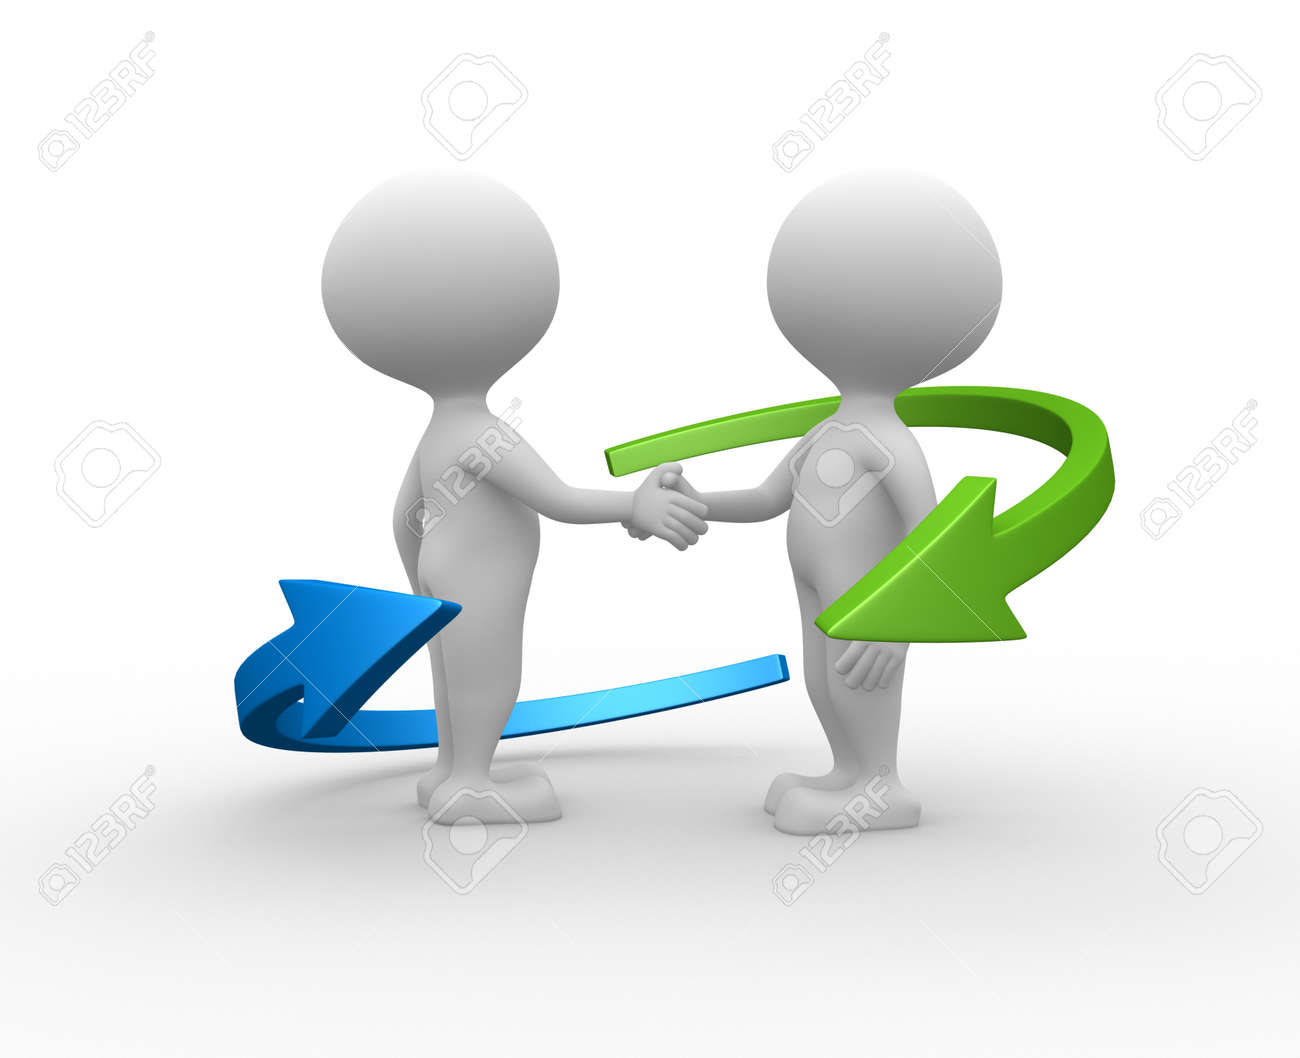 3d people - men, person shaking hands and an arrows. Partnership. Stock Photo - 25849941